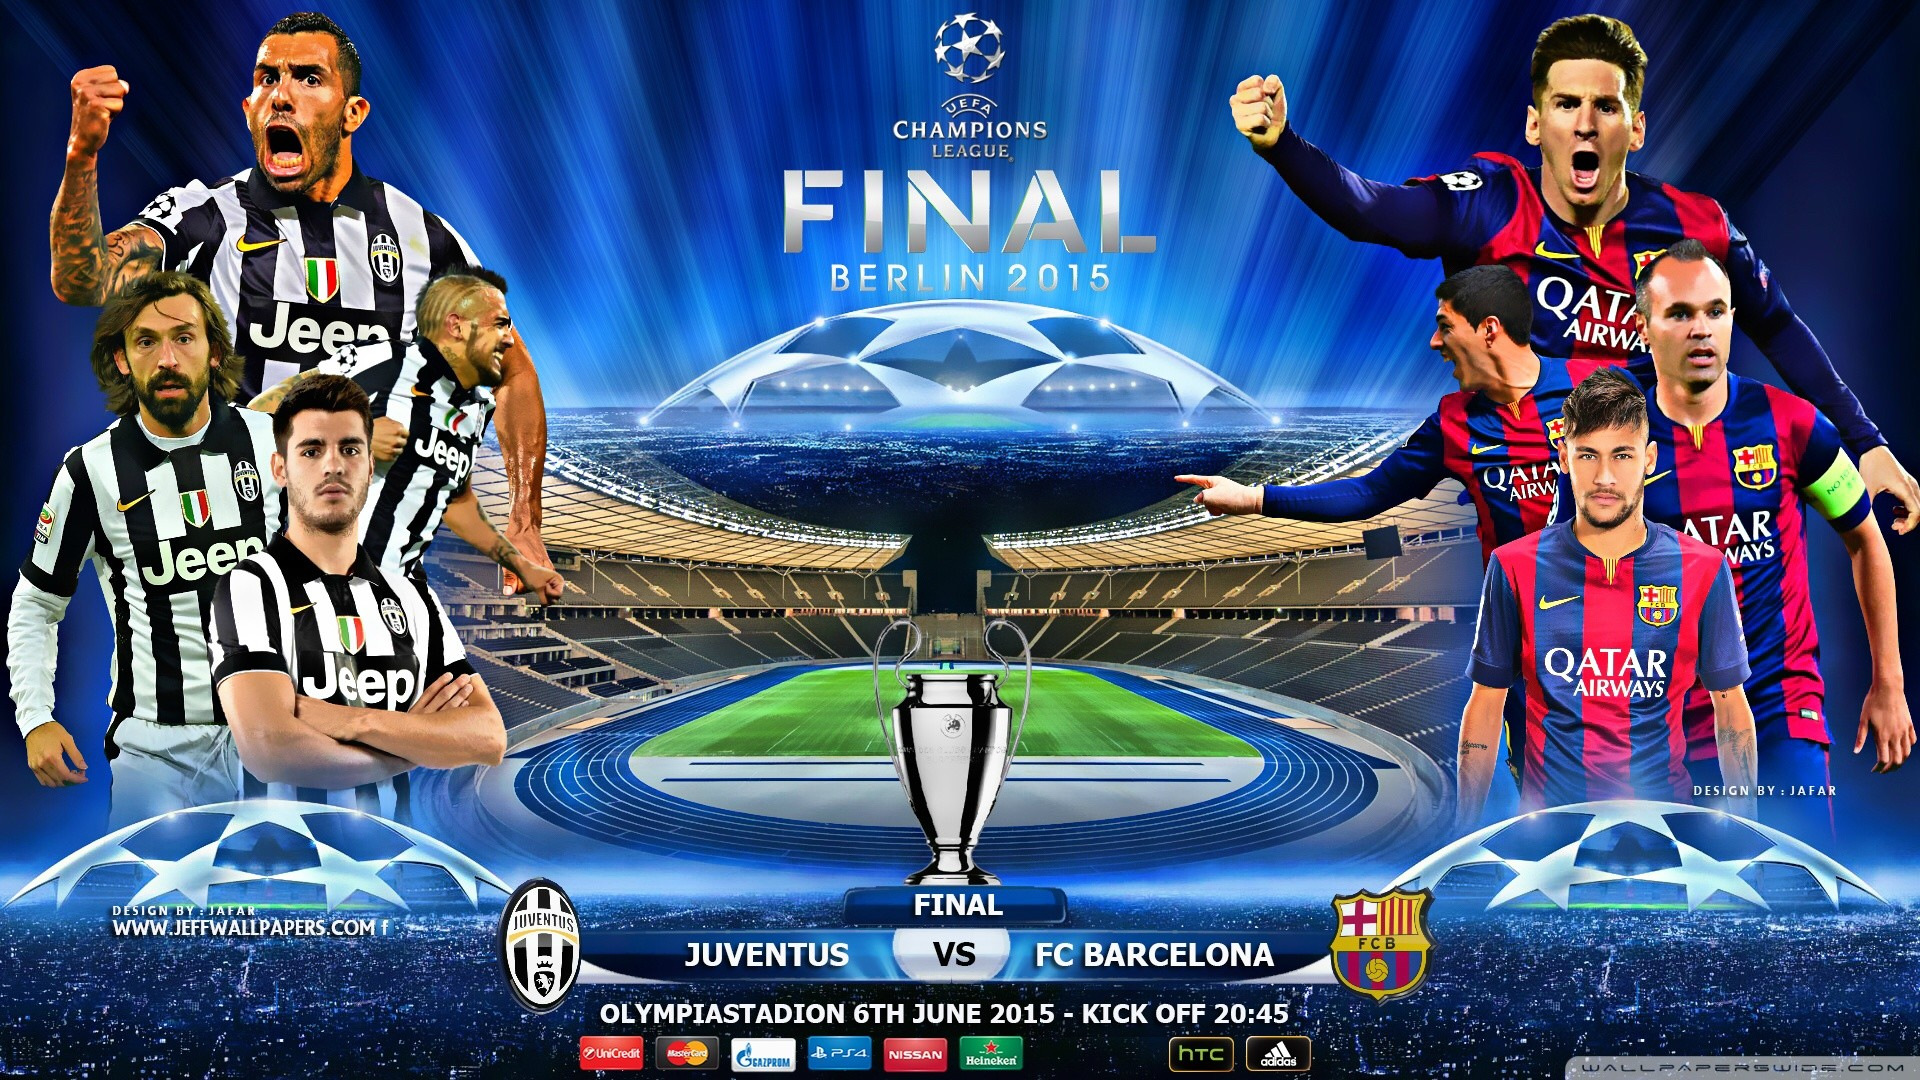 Champions League: Uefa Champions League Wallpaper HD (72+ Images